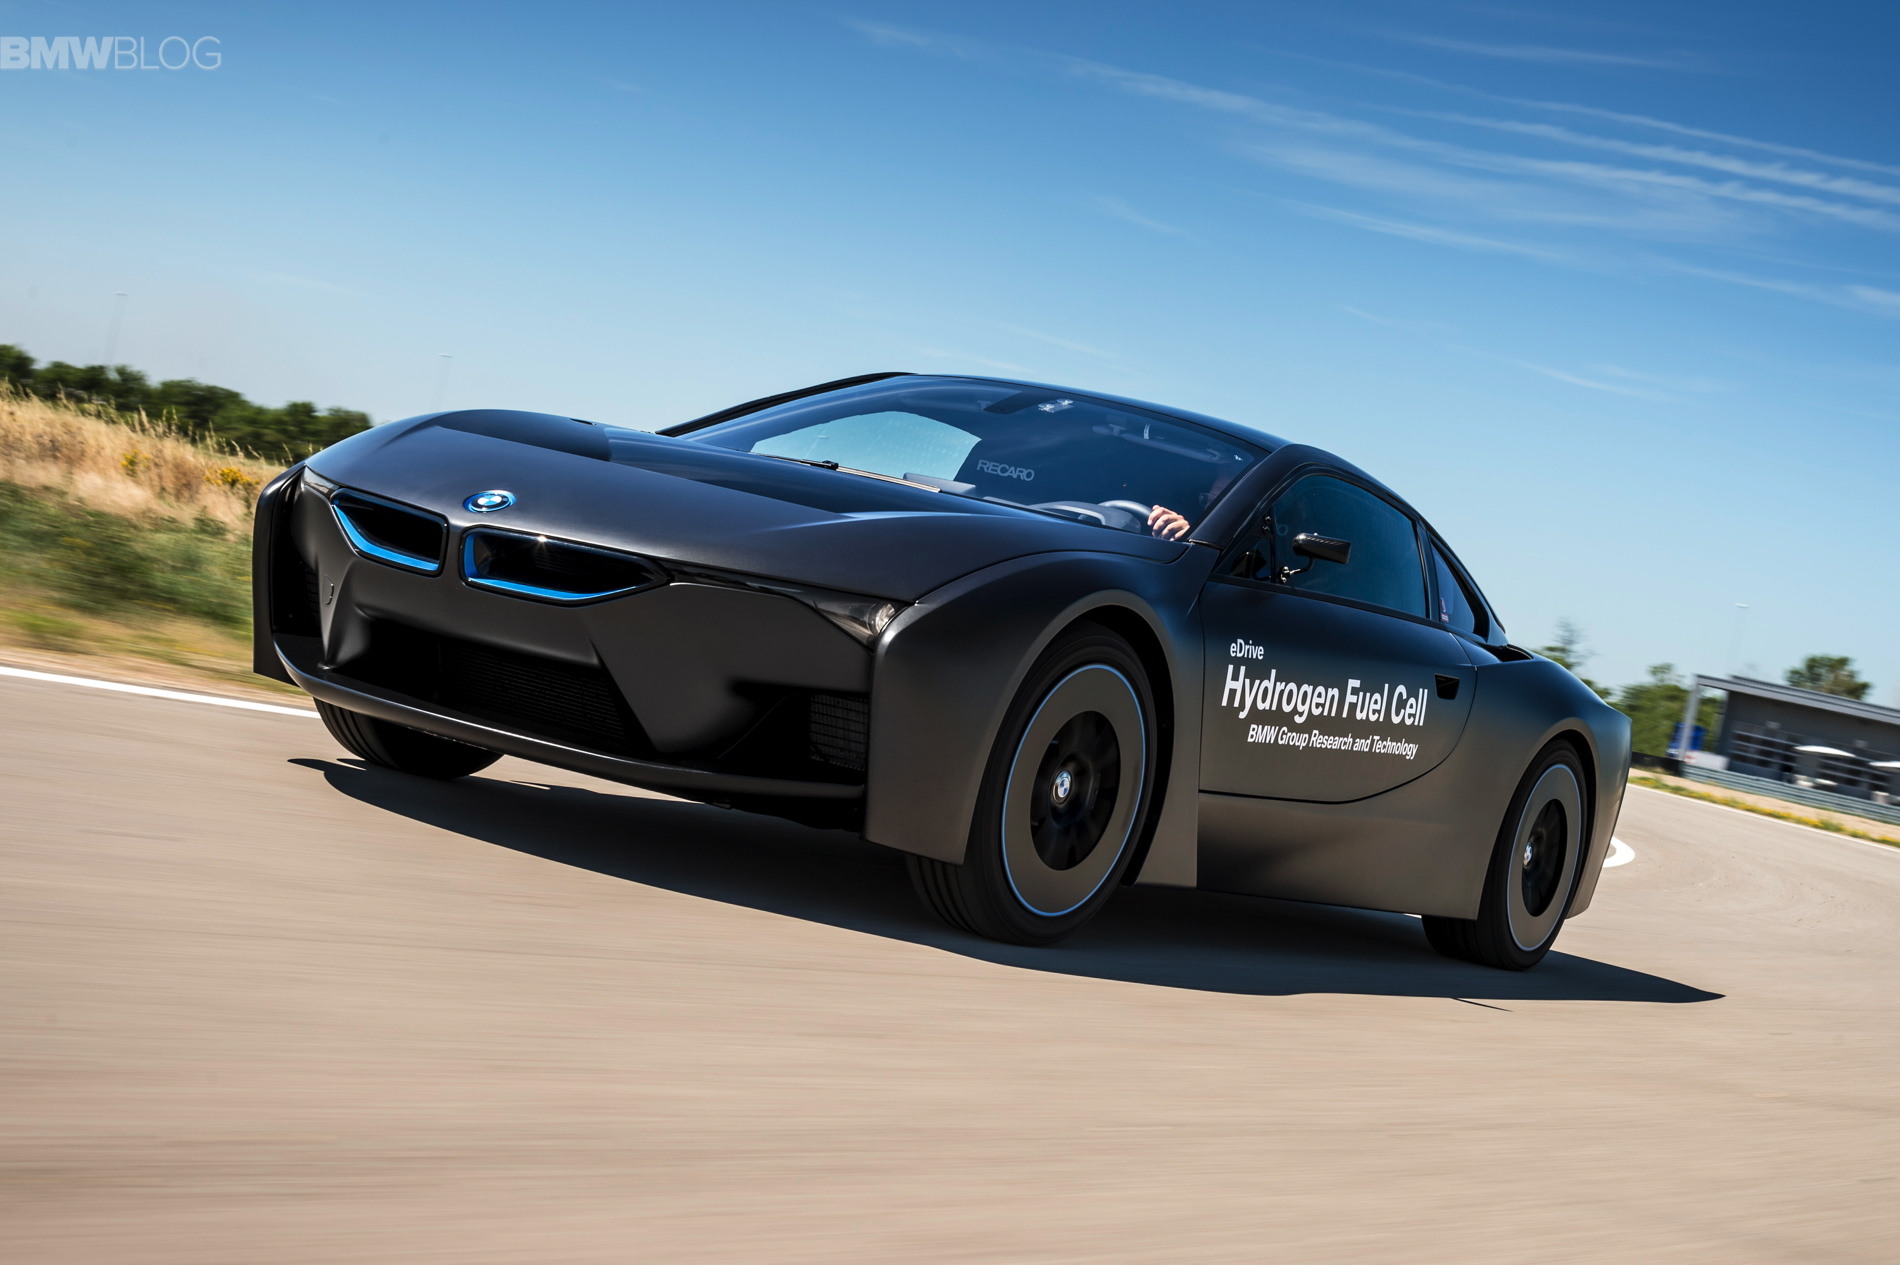 BMW i8 hydrogen fuel cell images 03